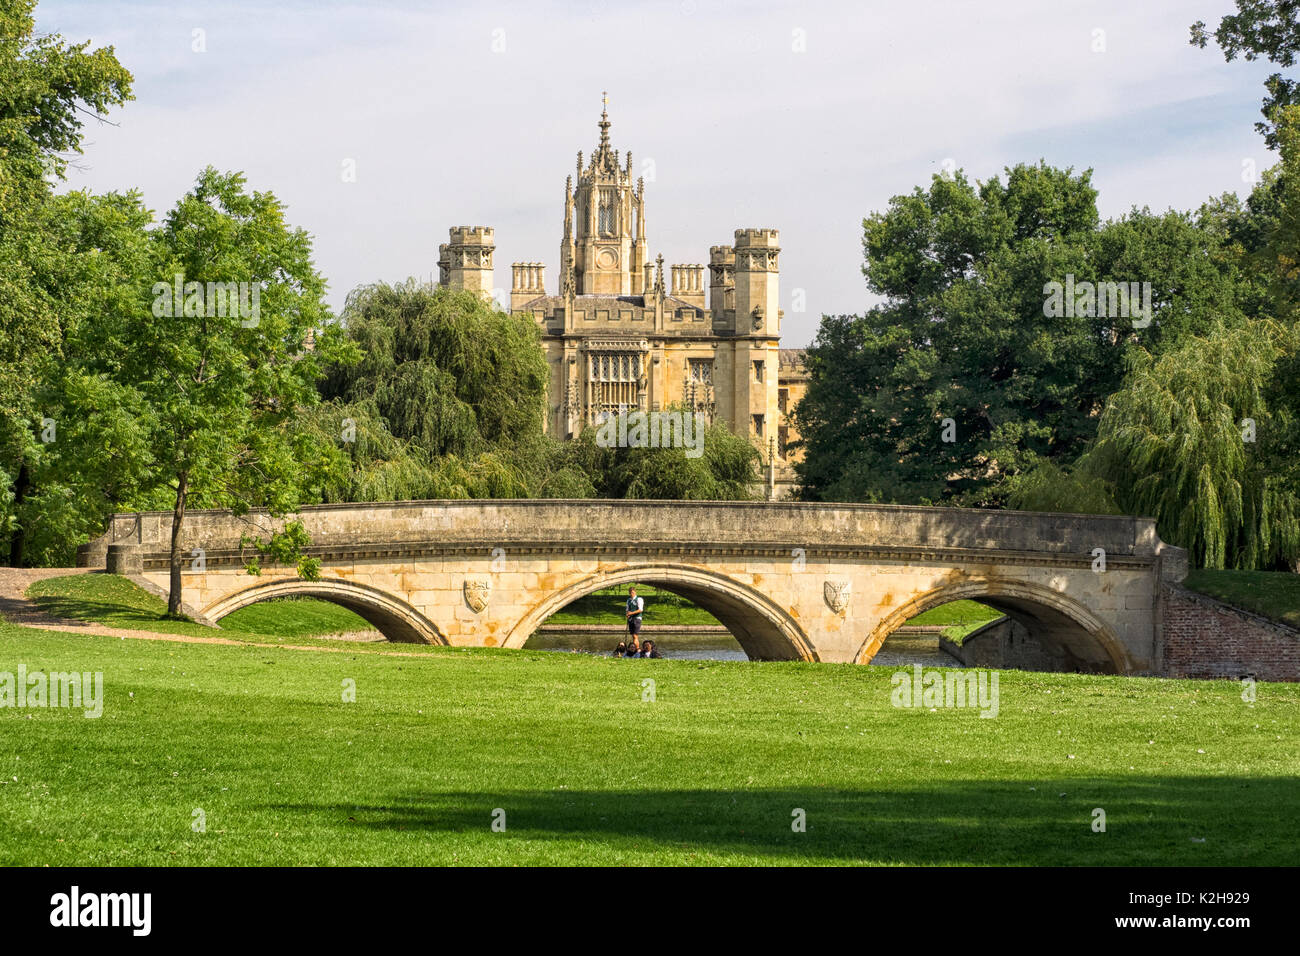 CAMBRIDGE, UK:  View of St John's College and Trinity Bridge viewed from The backs - Stock Image